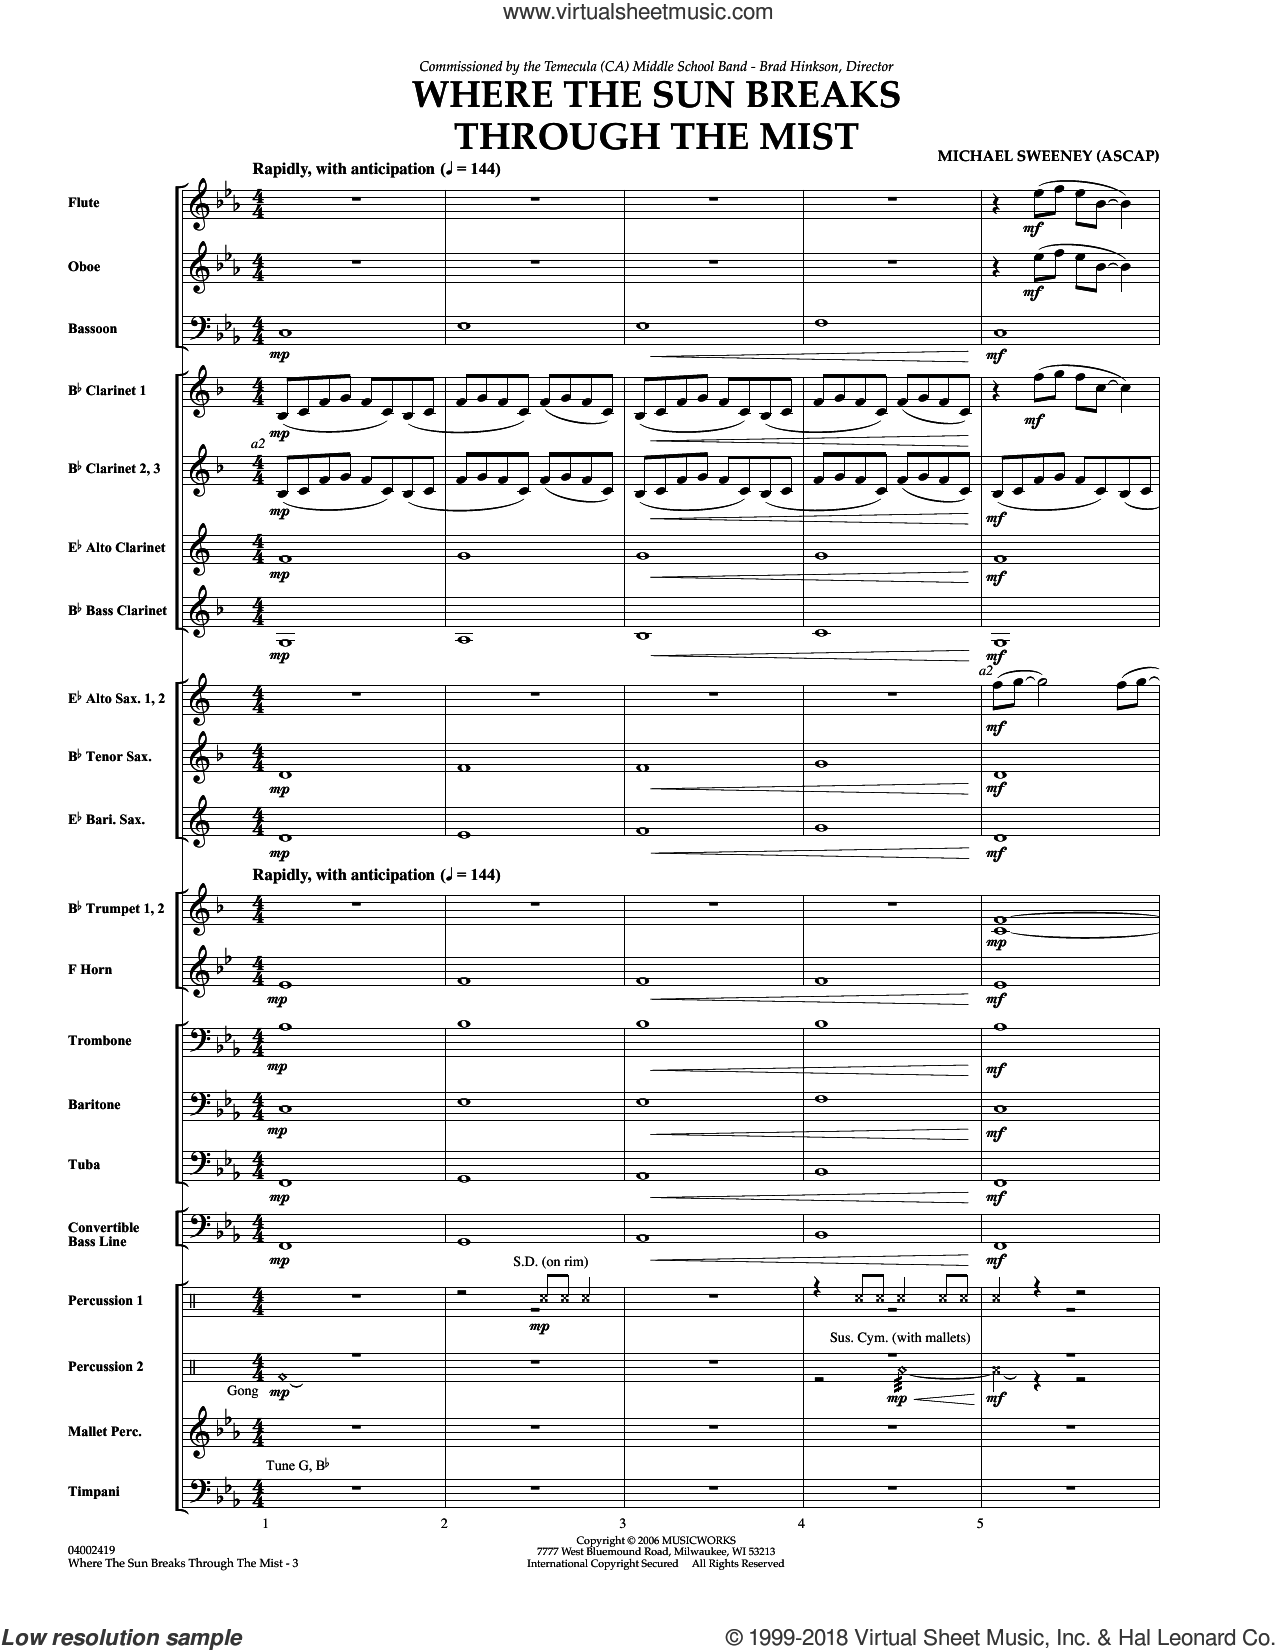 Where the Sun Breaks Through the Mist (COMPLETE) sheet music for concert band by Michael Sweeney, intermediate skill level